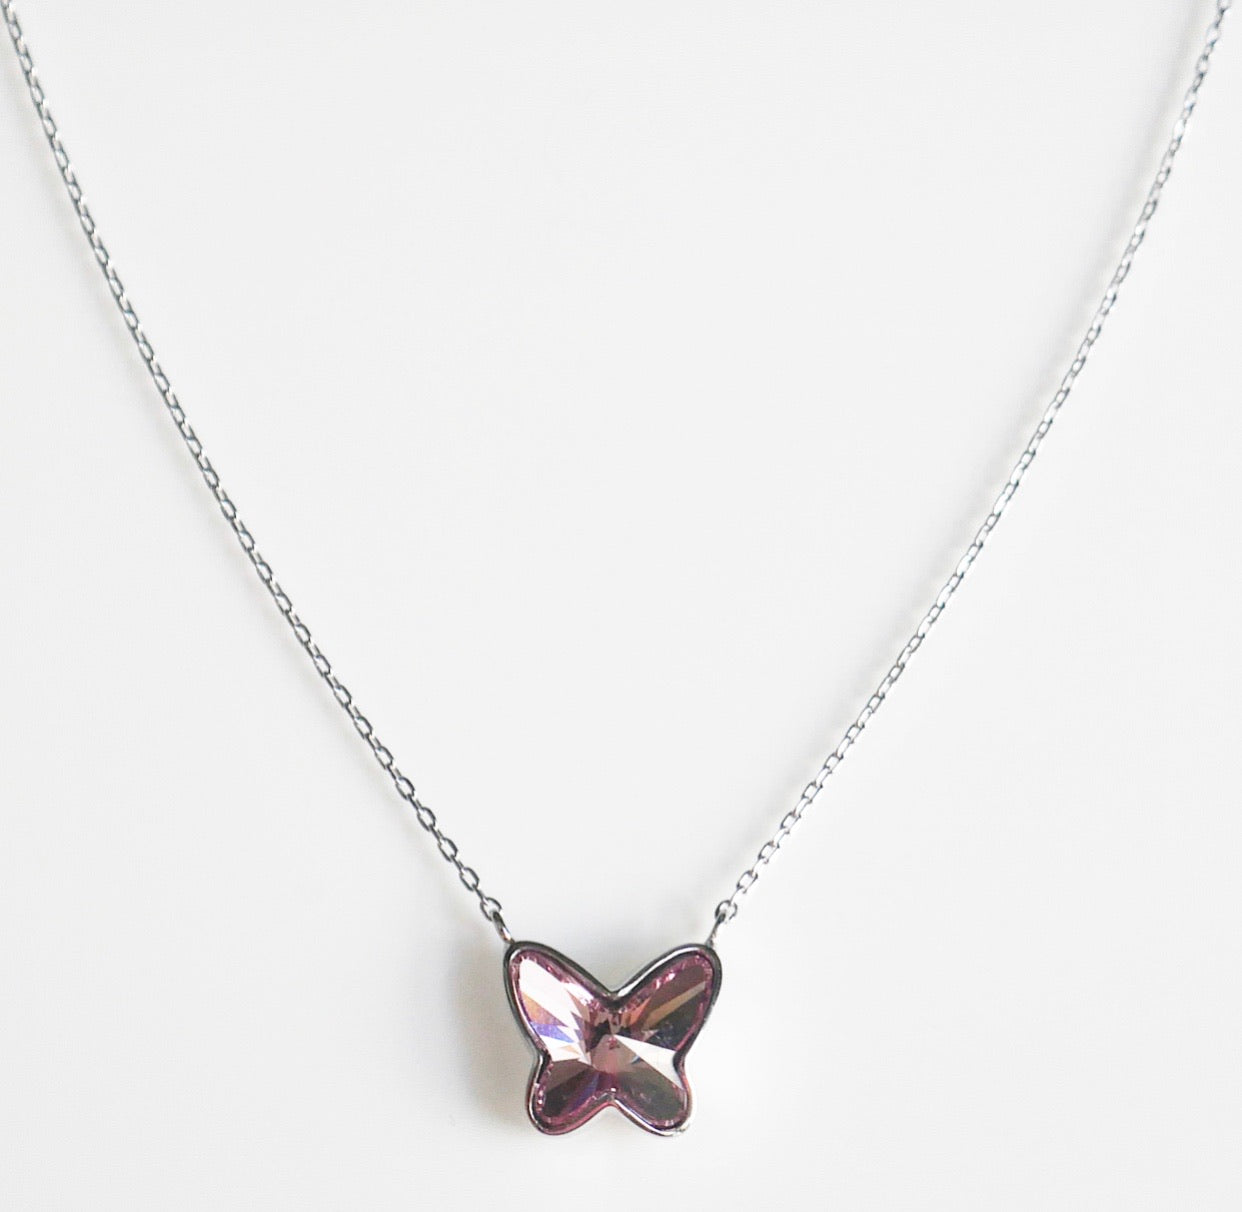 butterfly necklace in sterling silver swarovski butterly necklace small butterfly necklace sterling silver necklace